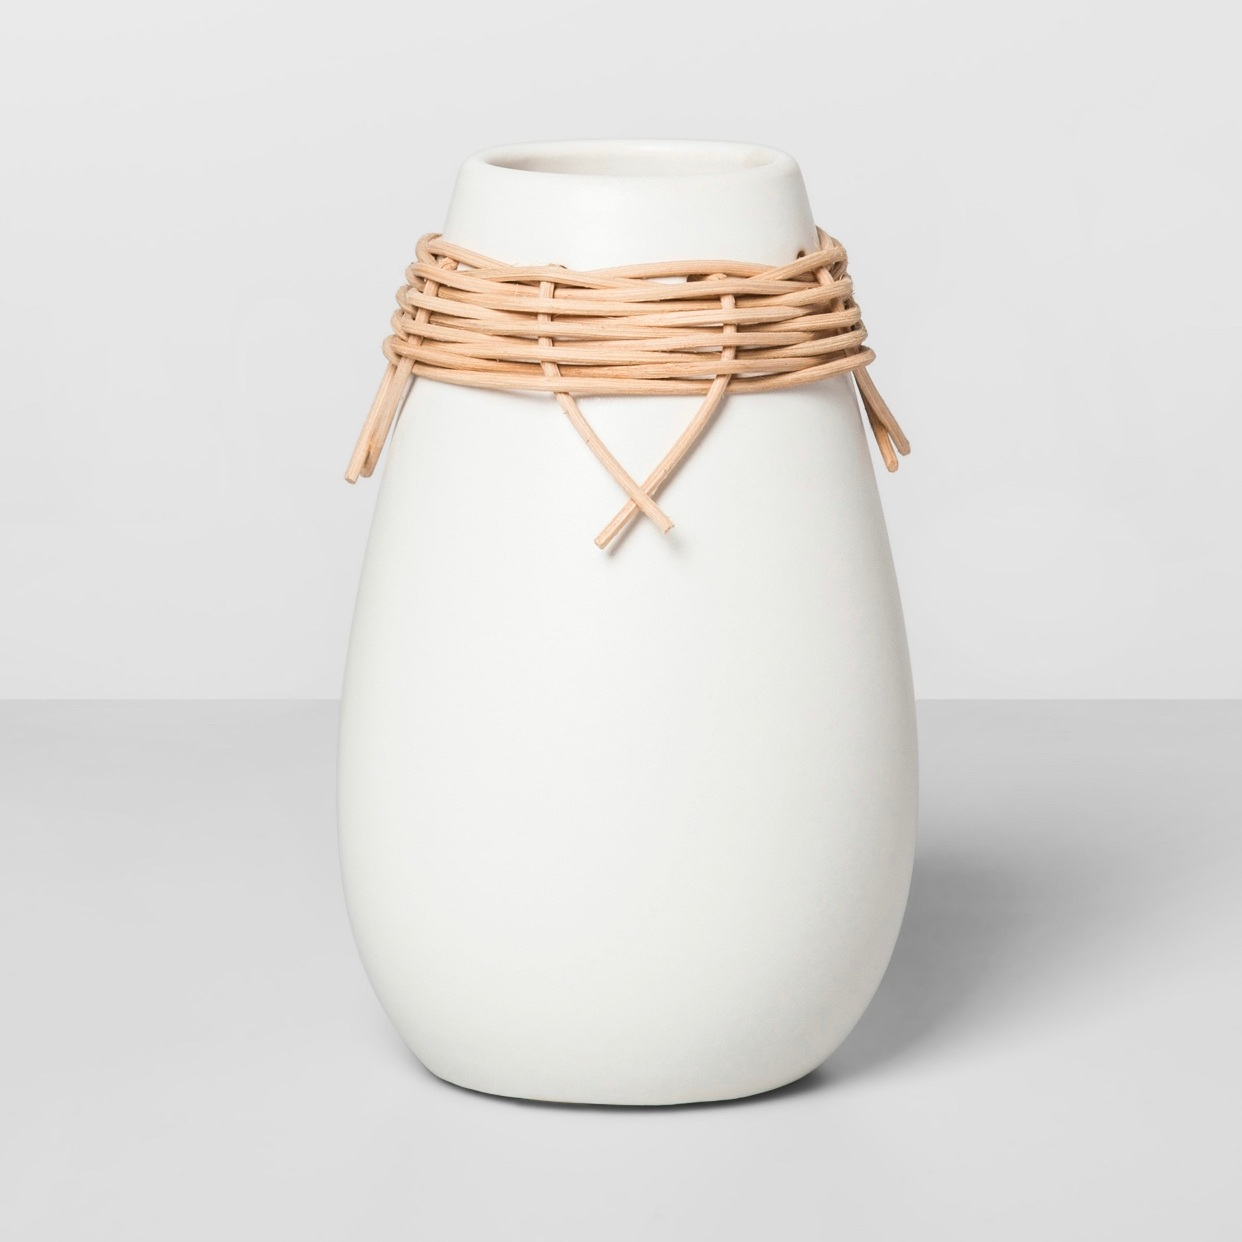 - CUTE! It comes in different sizes too! I'm really into all things rattan right now!Find it here.